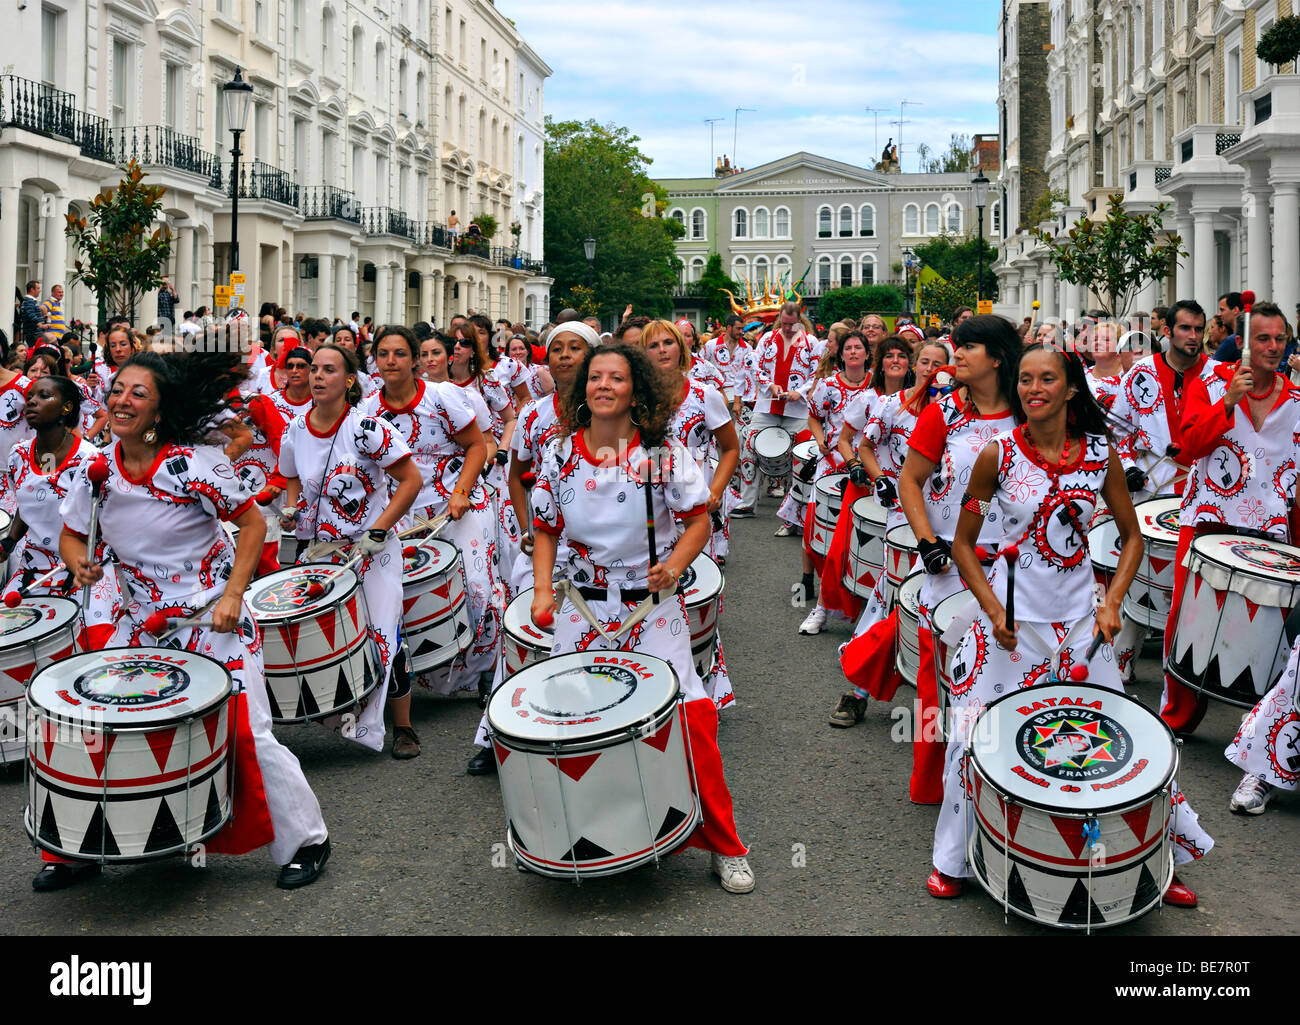 Notting Hill Carnival Stockbild